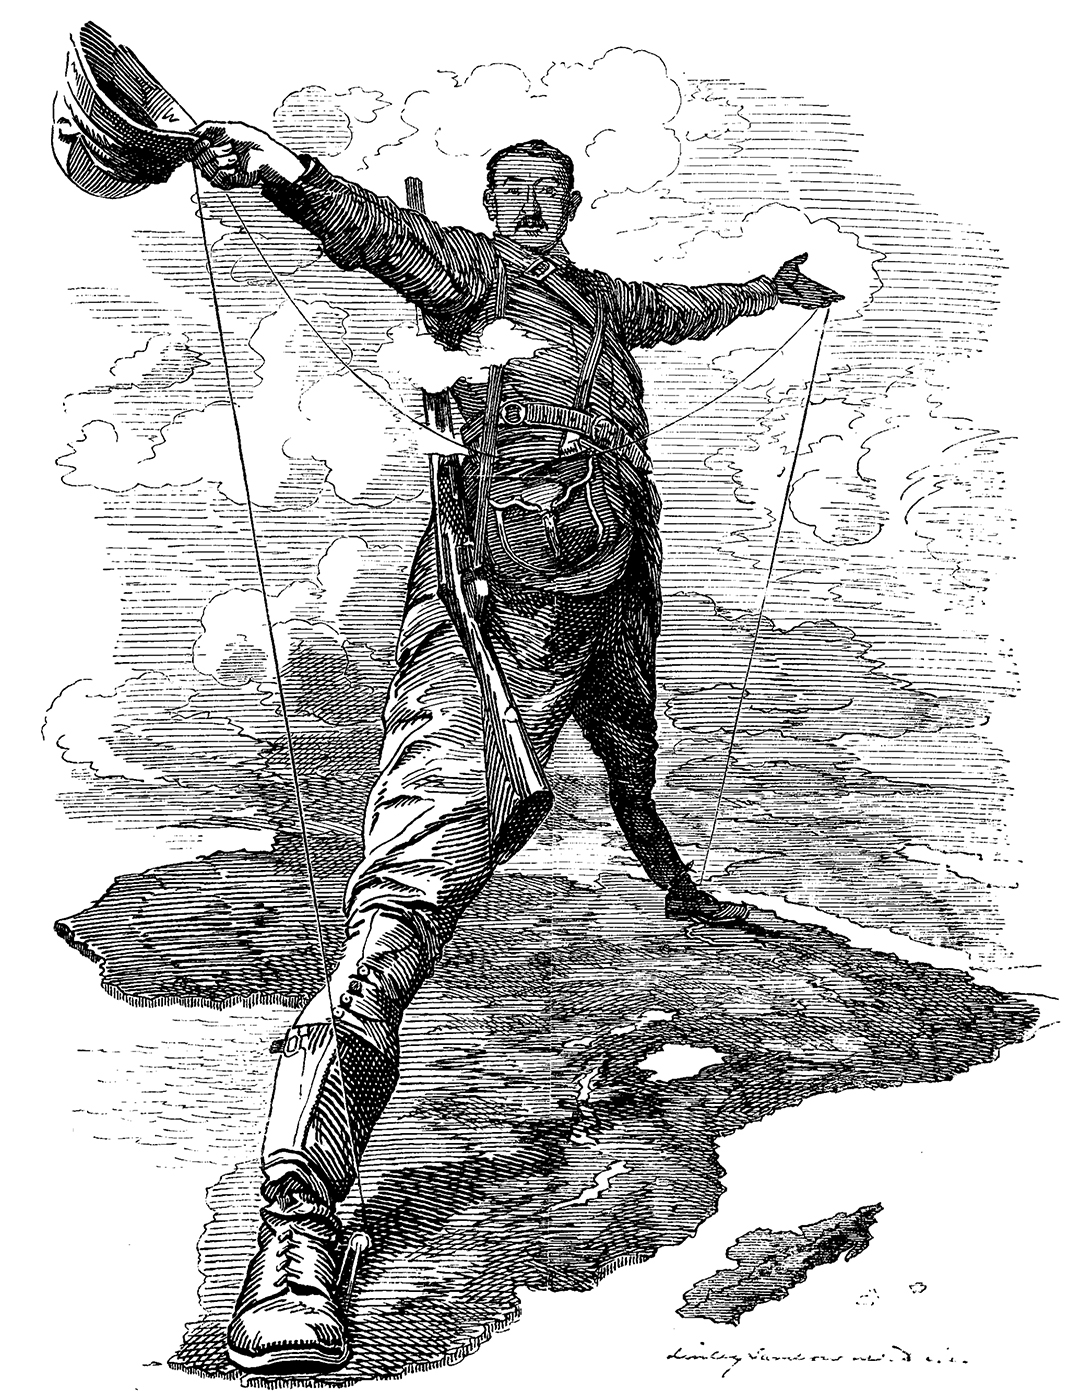 Wikipedia: Edward Linley Sambourne (1844–1910) - Punch and Exploring History 1400-1900: An anthology of primary sources, p. 401 by Rachel C. Gibbons